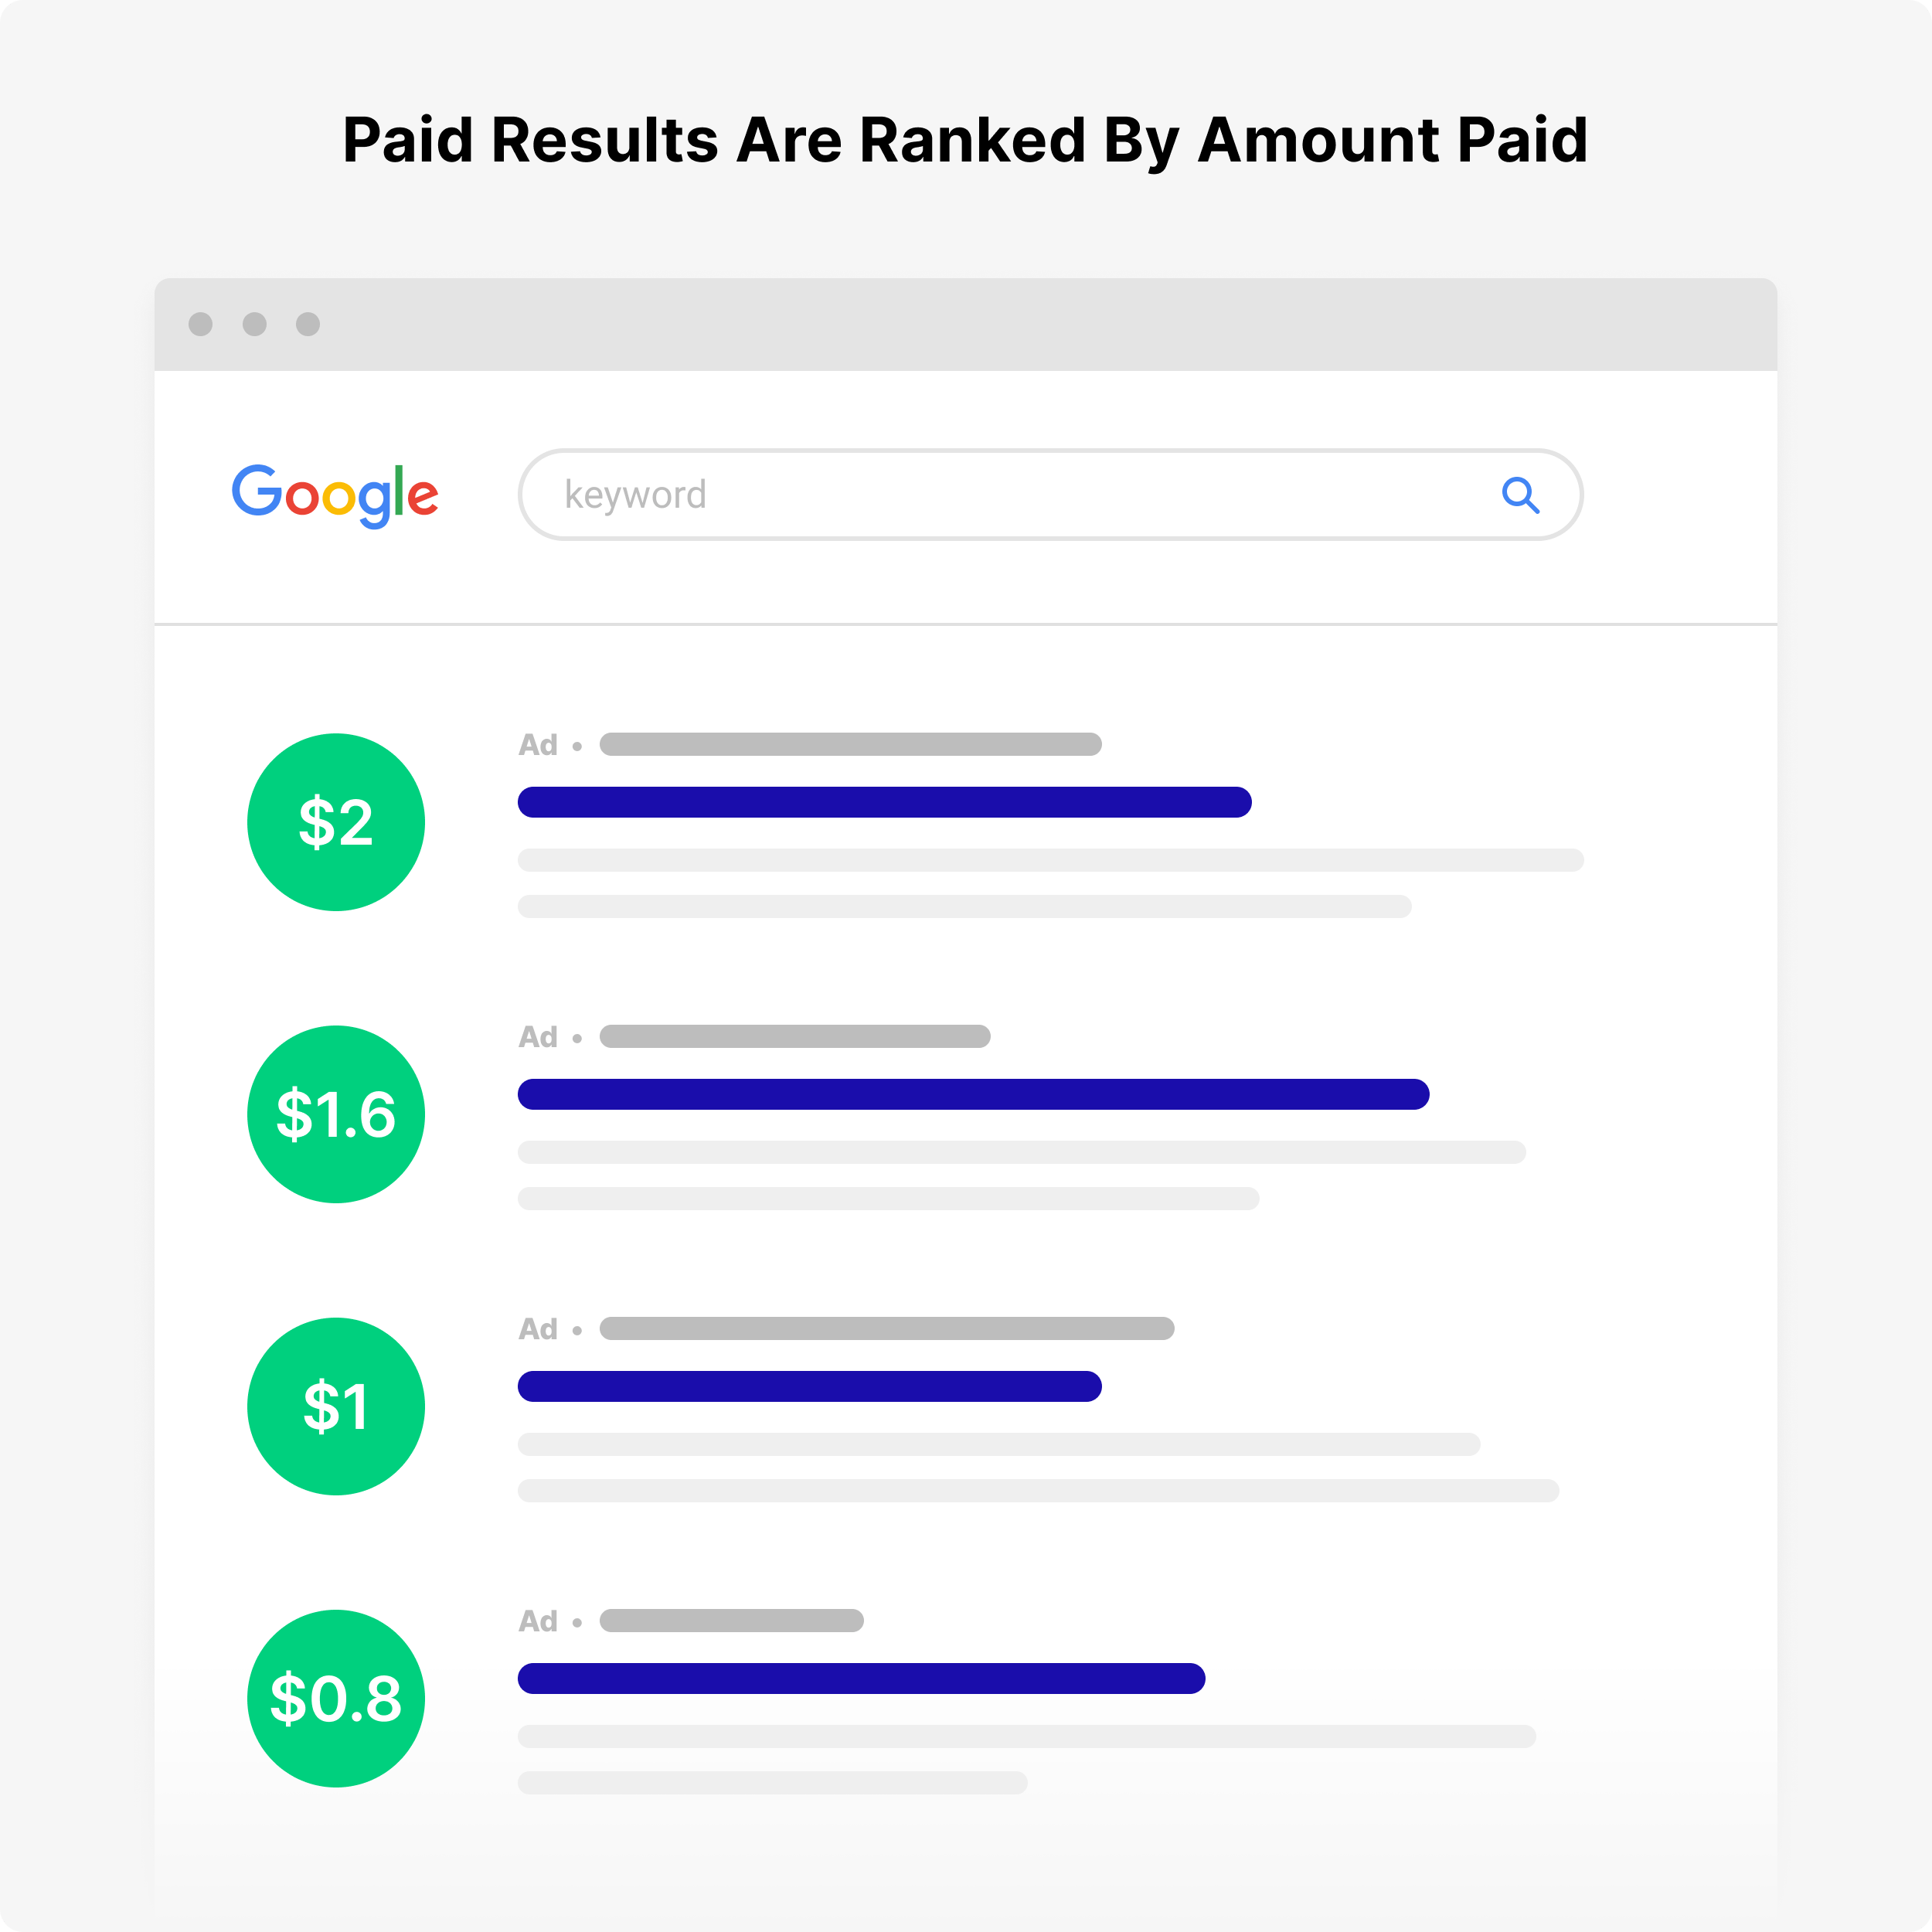 Paid results ranked by amount paid